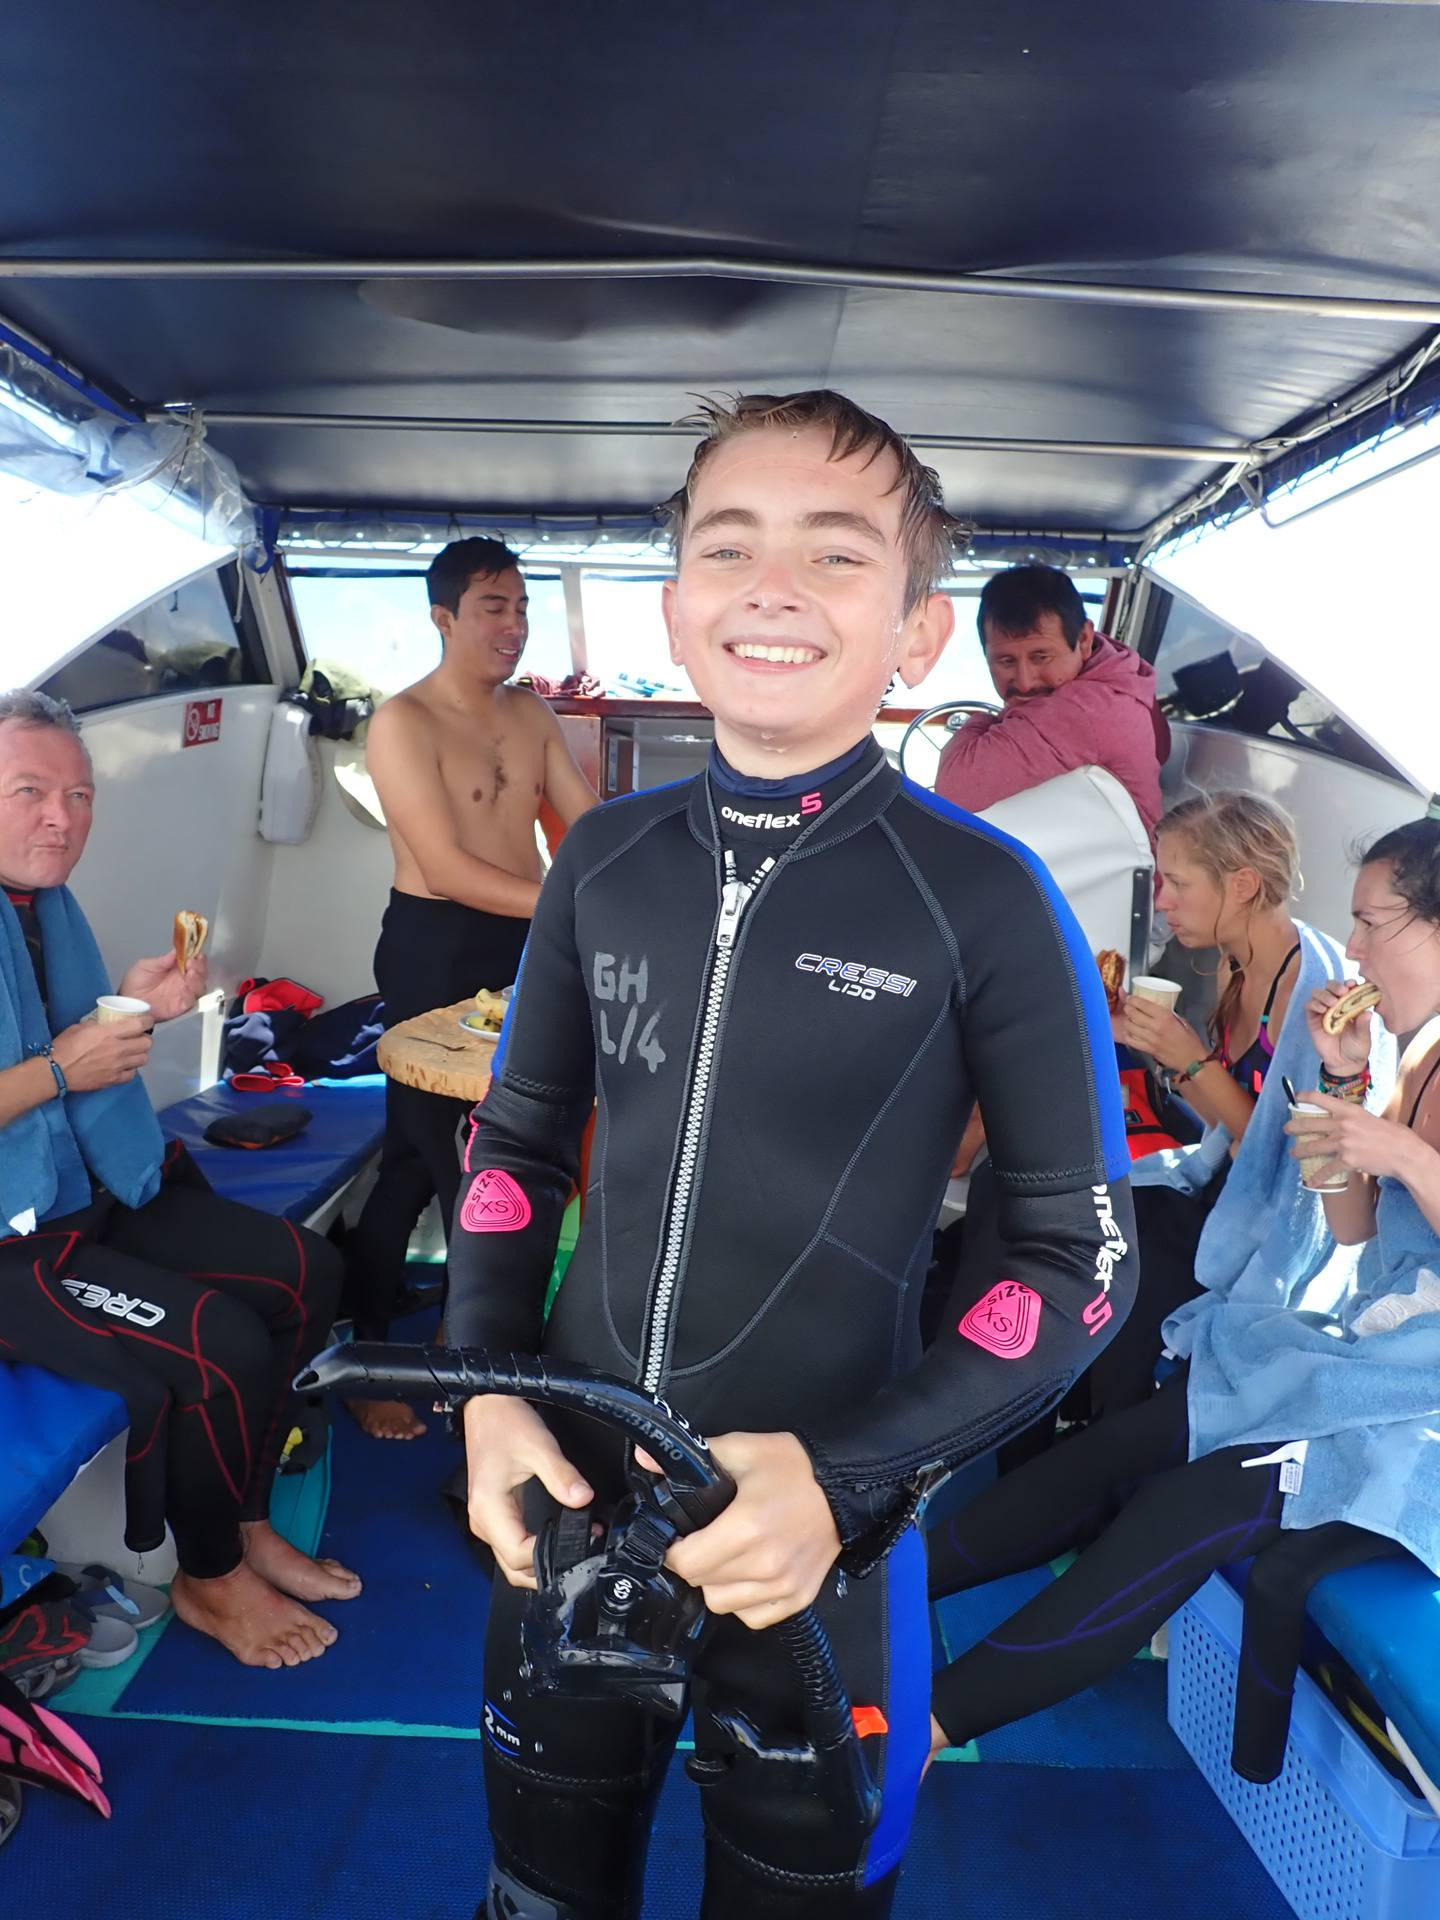 Eddie Jarman, 14, was hit by a speedboat and killed off Moorea Island in French Polynesia on August 9. His family have been rejected entry into NZ border under humanitarian grounds. Photo / Supplied